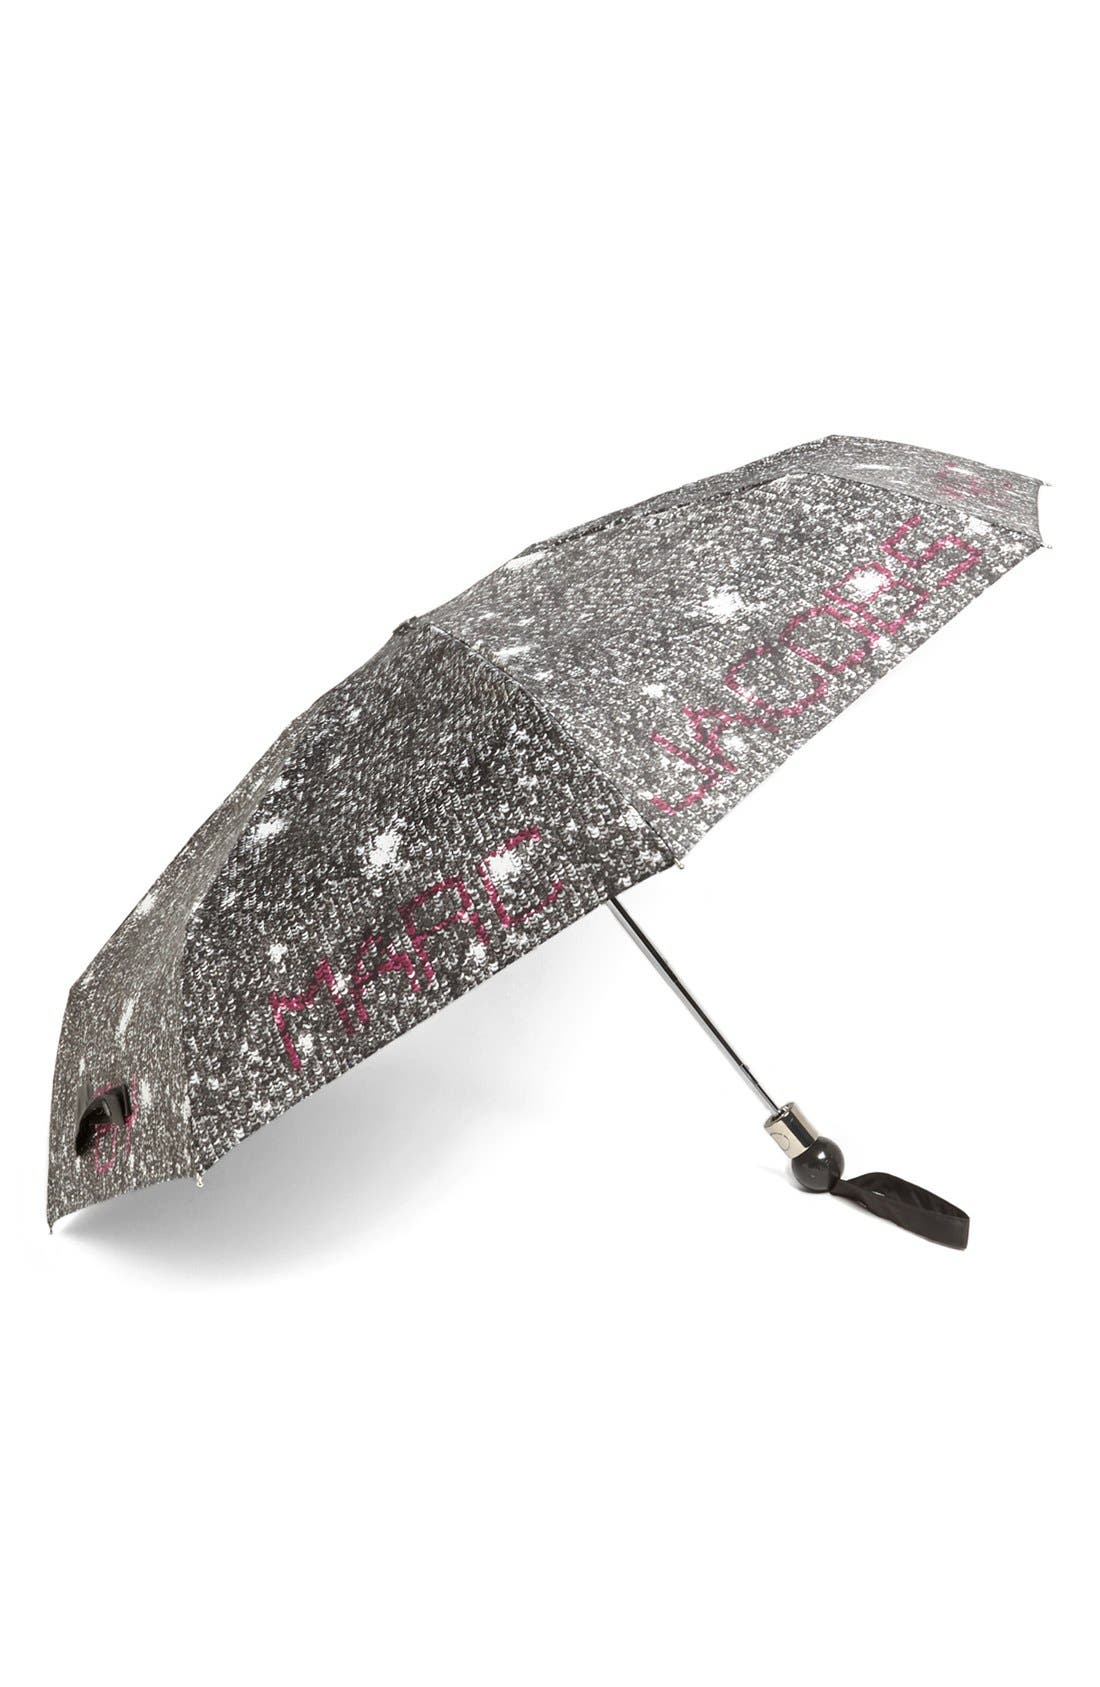 MARC BY MARC JACOBS 'Twilight' Umbrella,                             Main thumbnail 1, color,                             002